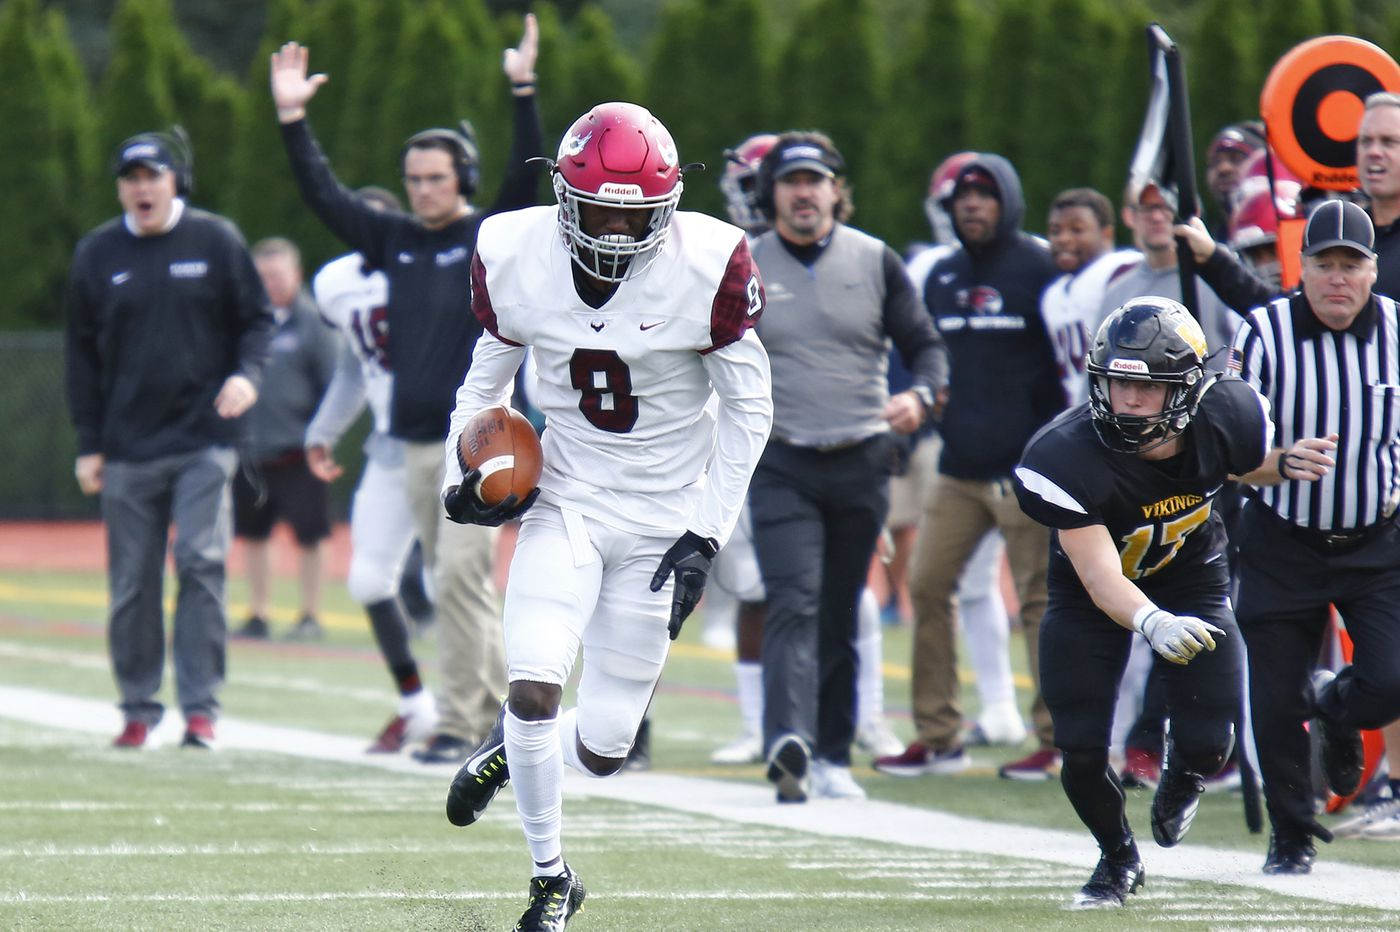 St. Joseph's Prep receiver Marvin Harrison Jr. commits to Ohio State